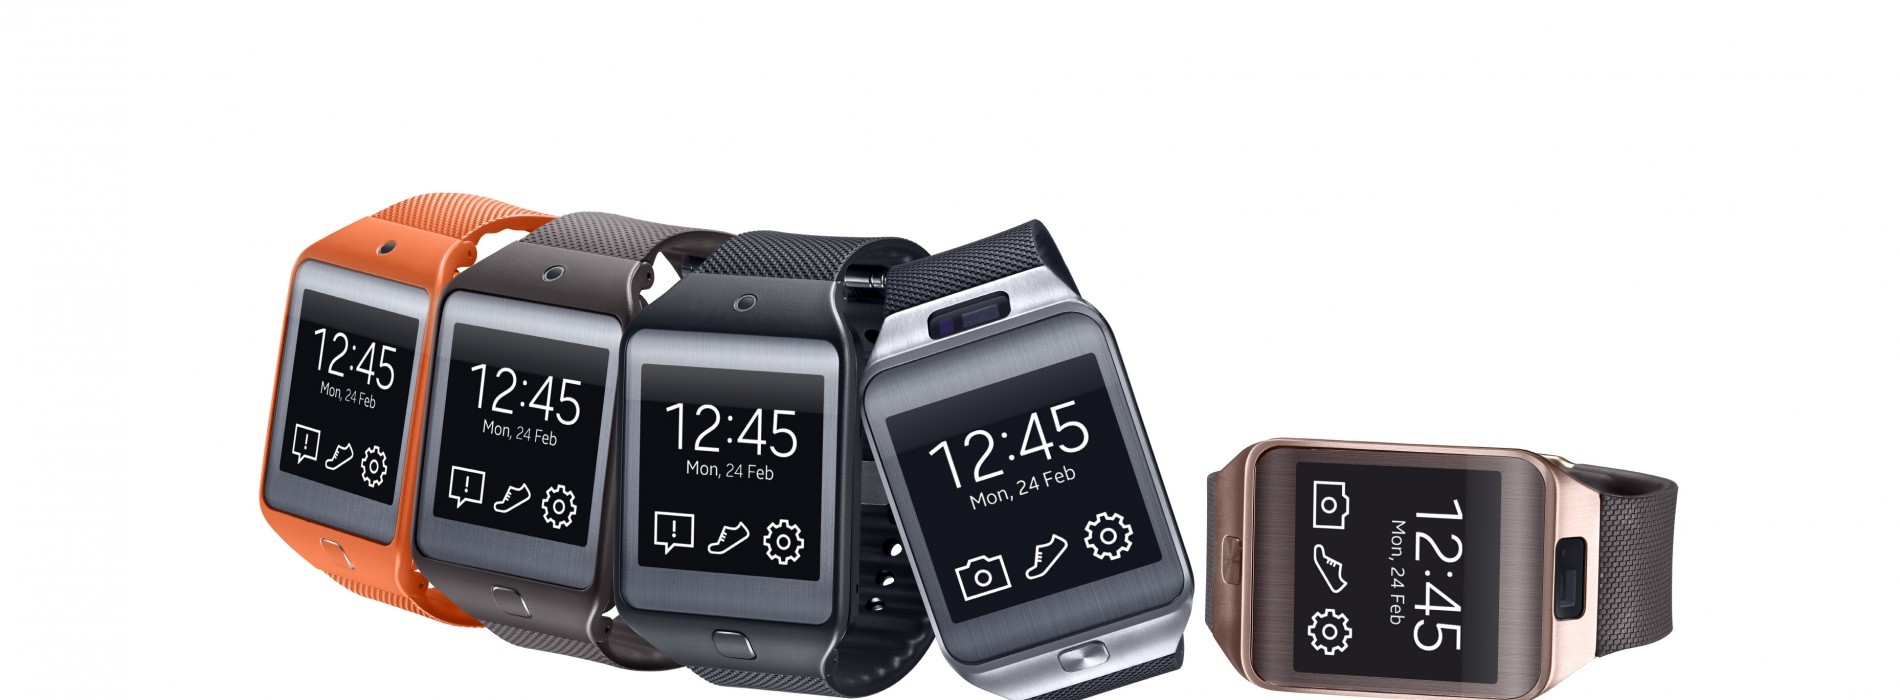 Samsung Gear 2 and Gear 2 Neo gallery